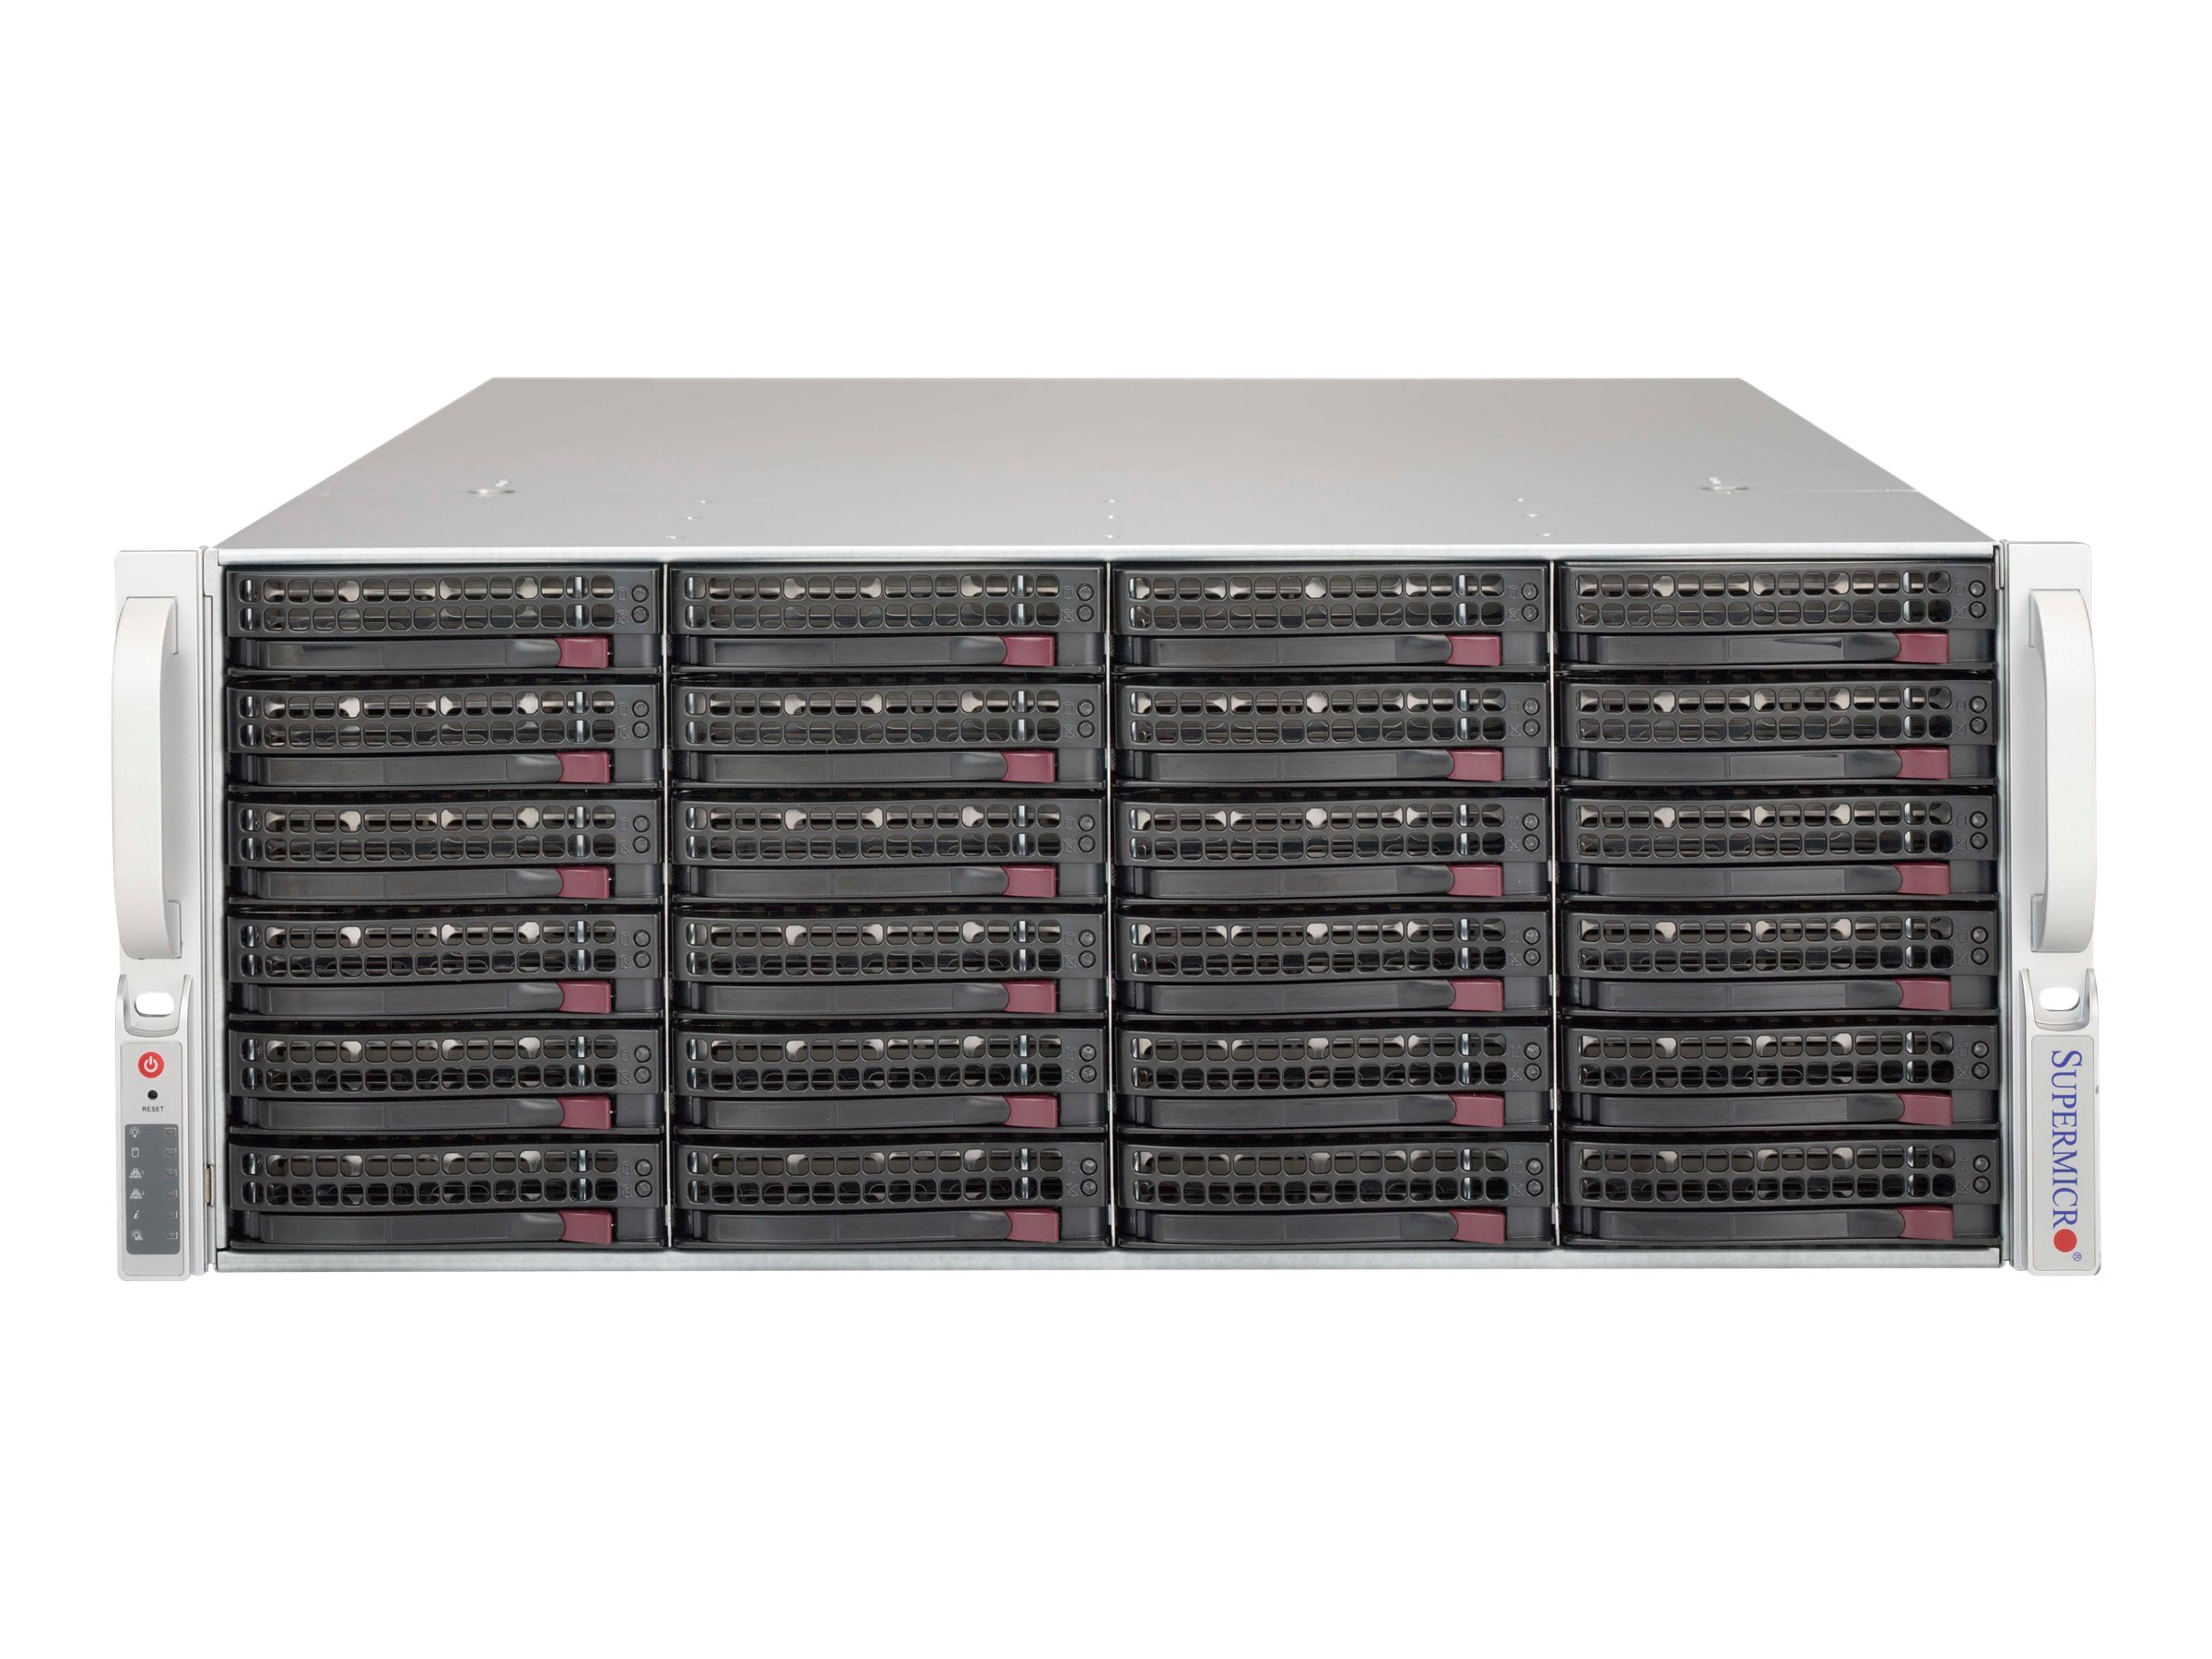 Supermicro Chassis, SuperChassis 846BE1C-R1K03JBOD 4U RM 24x3.5 HS Bays 2x1000W, CSE-846BE1C-R1K03JBOD, 30614126, Cases - Systems/Servers